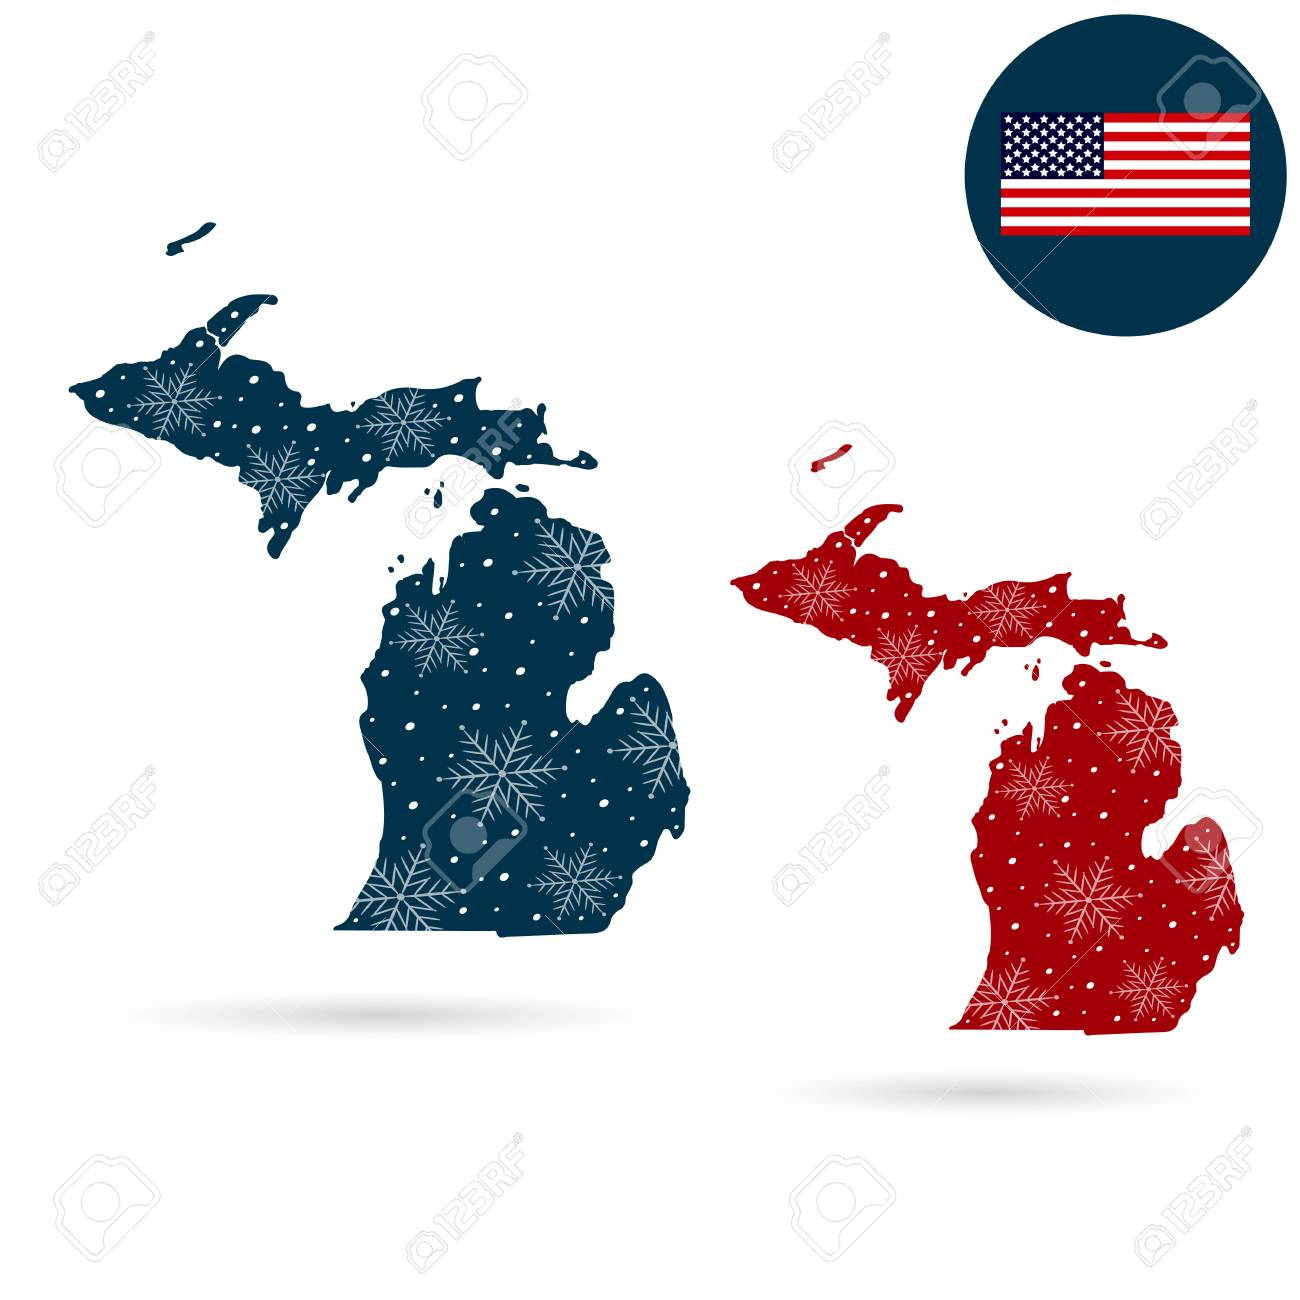 Map Of The U.S. State Of Michigan. Merry Christmas And Happy